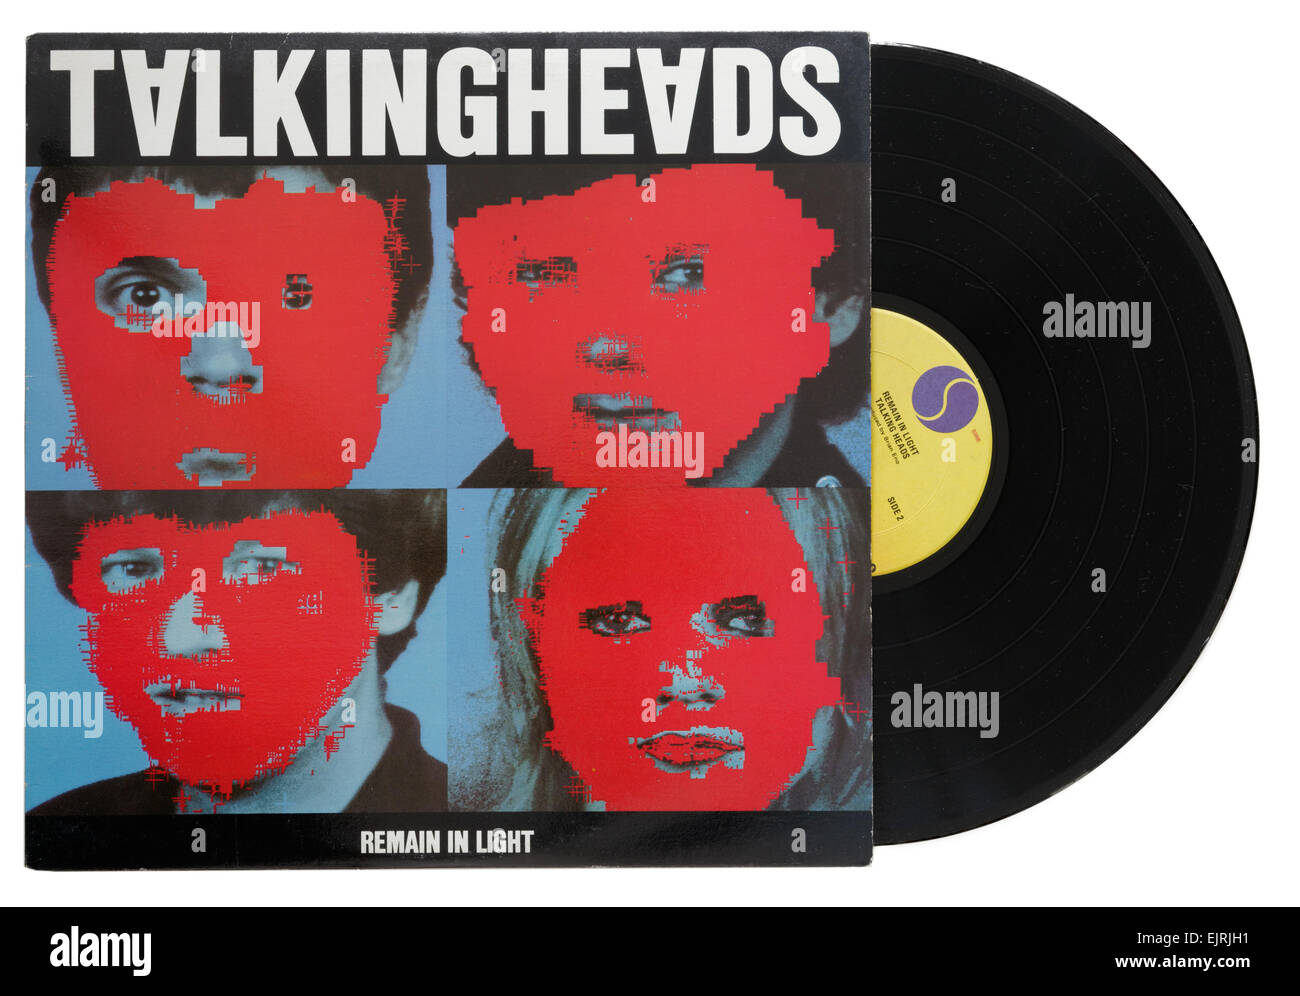 Talking Heads Remain in Light album - Stock Image